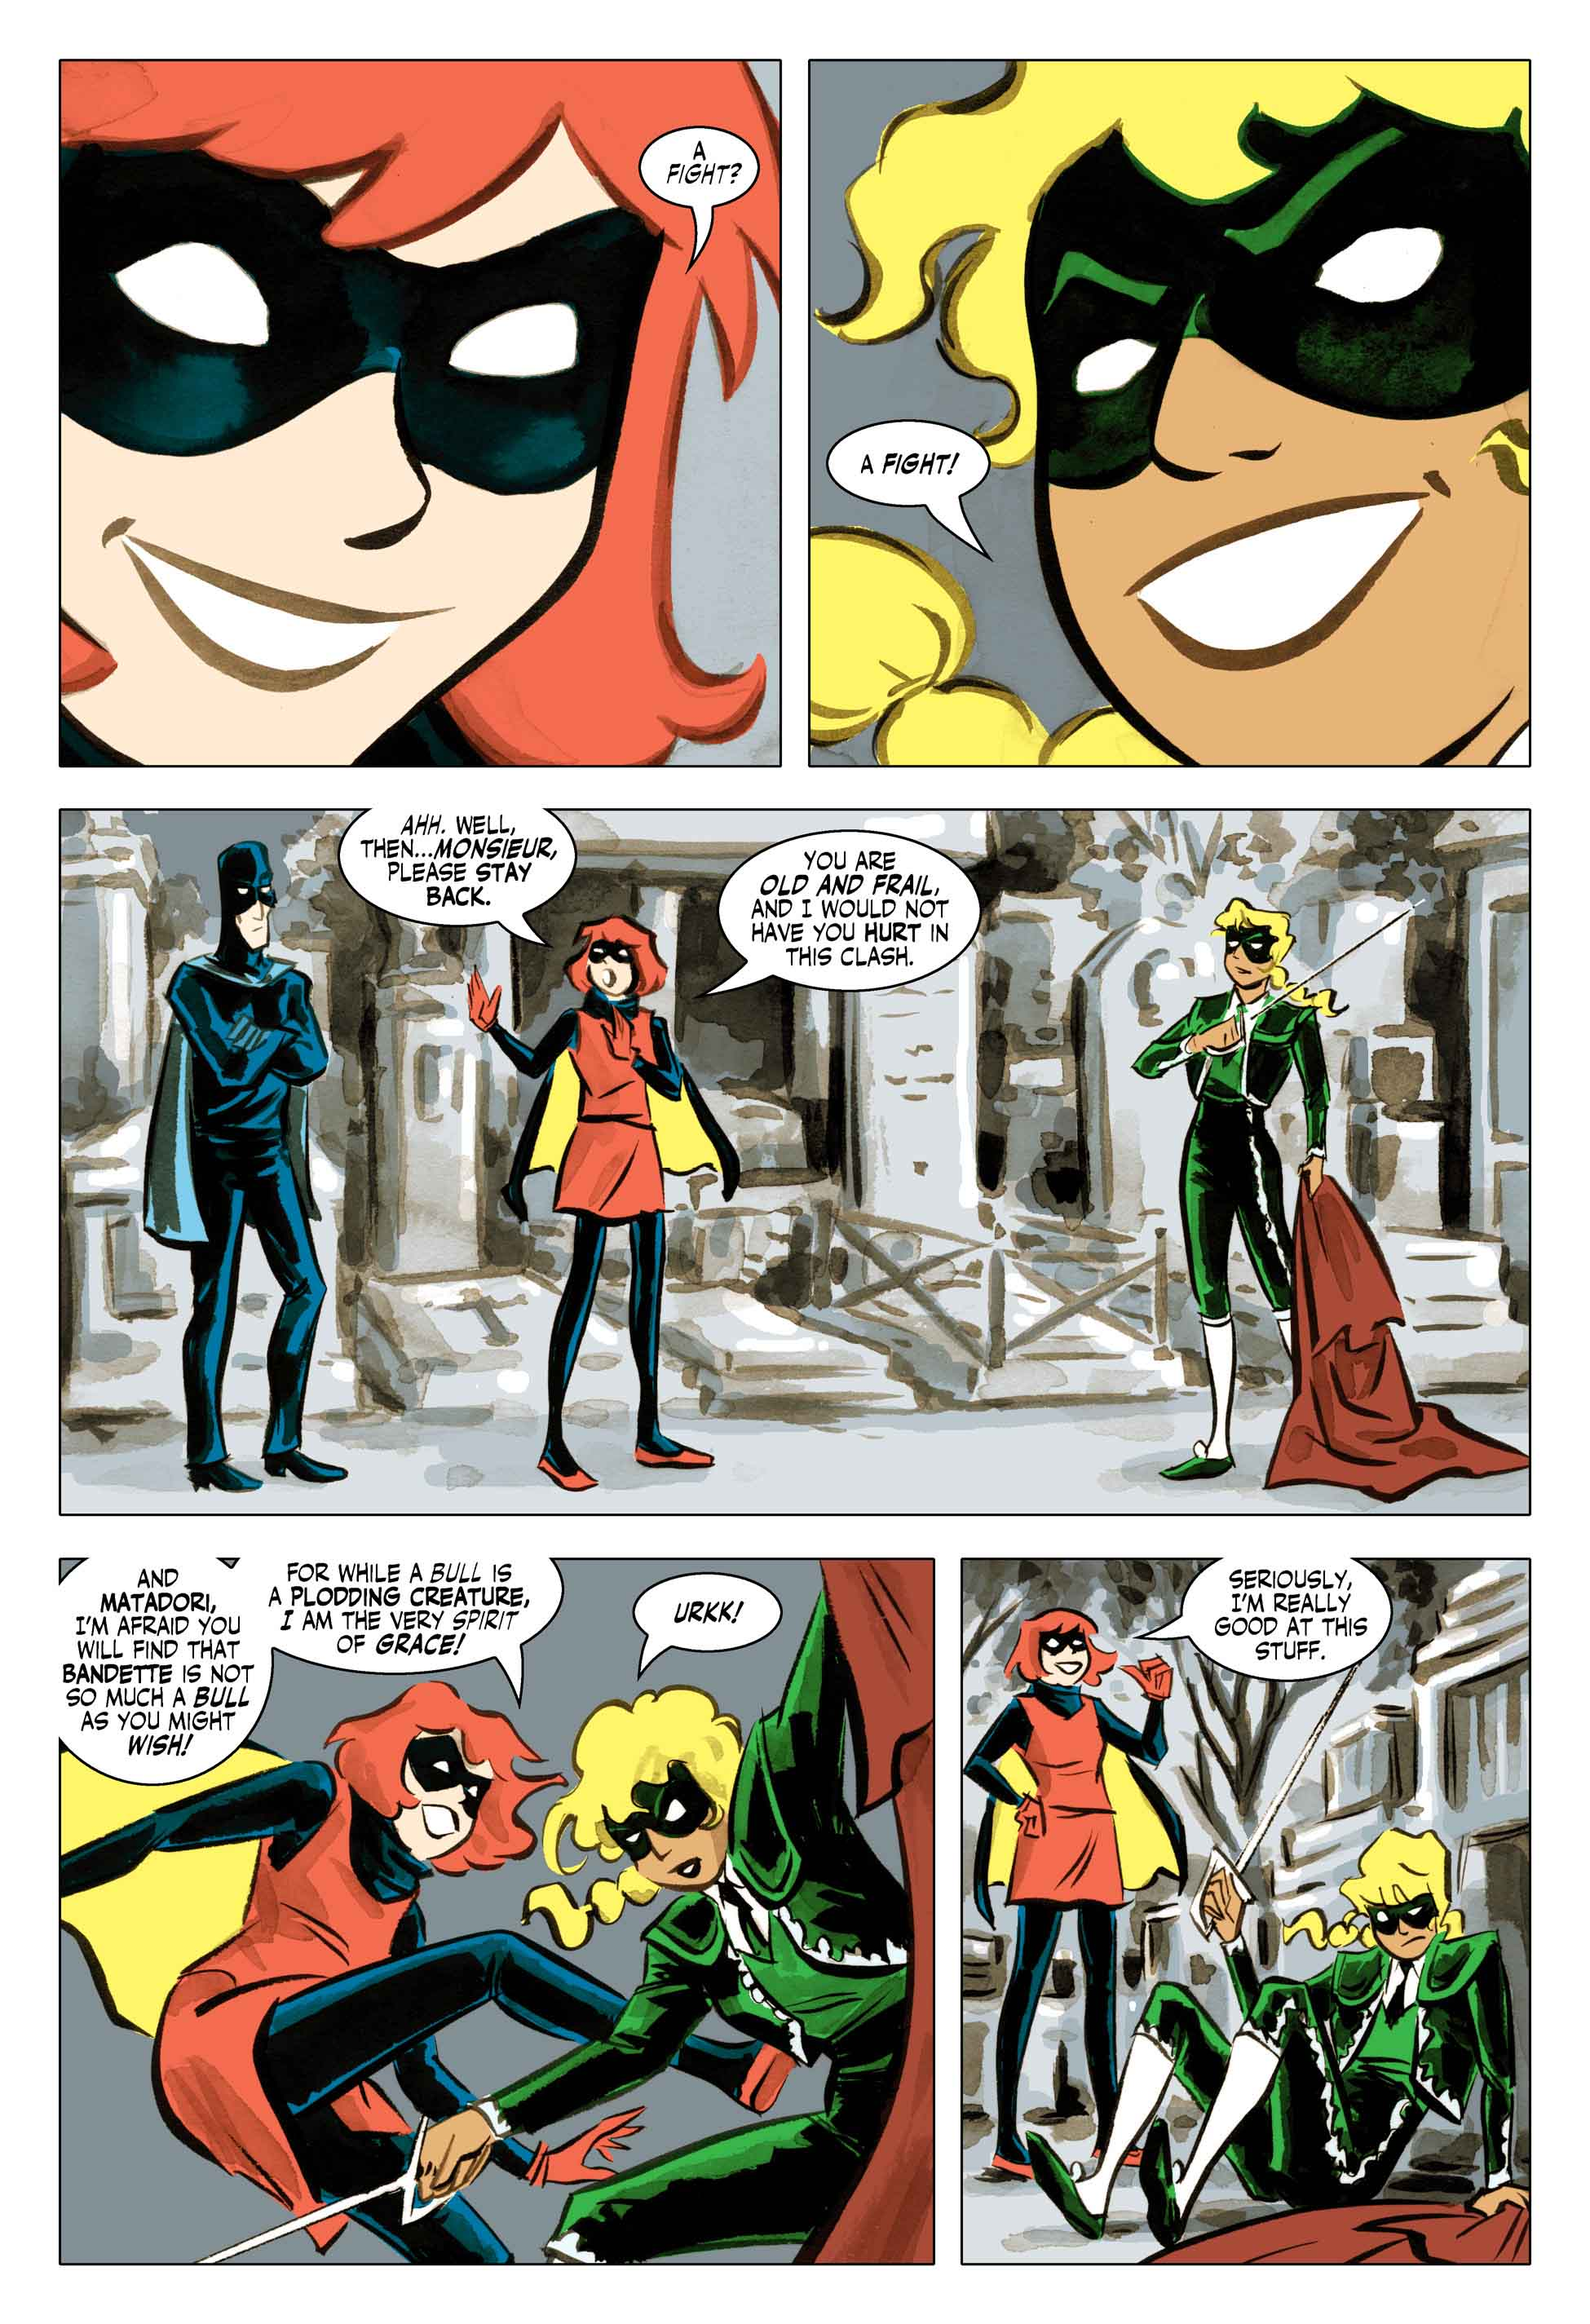 Read Monkeybrain's Bandette #1 for Free - The Beat